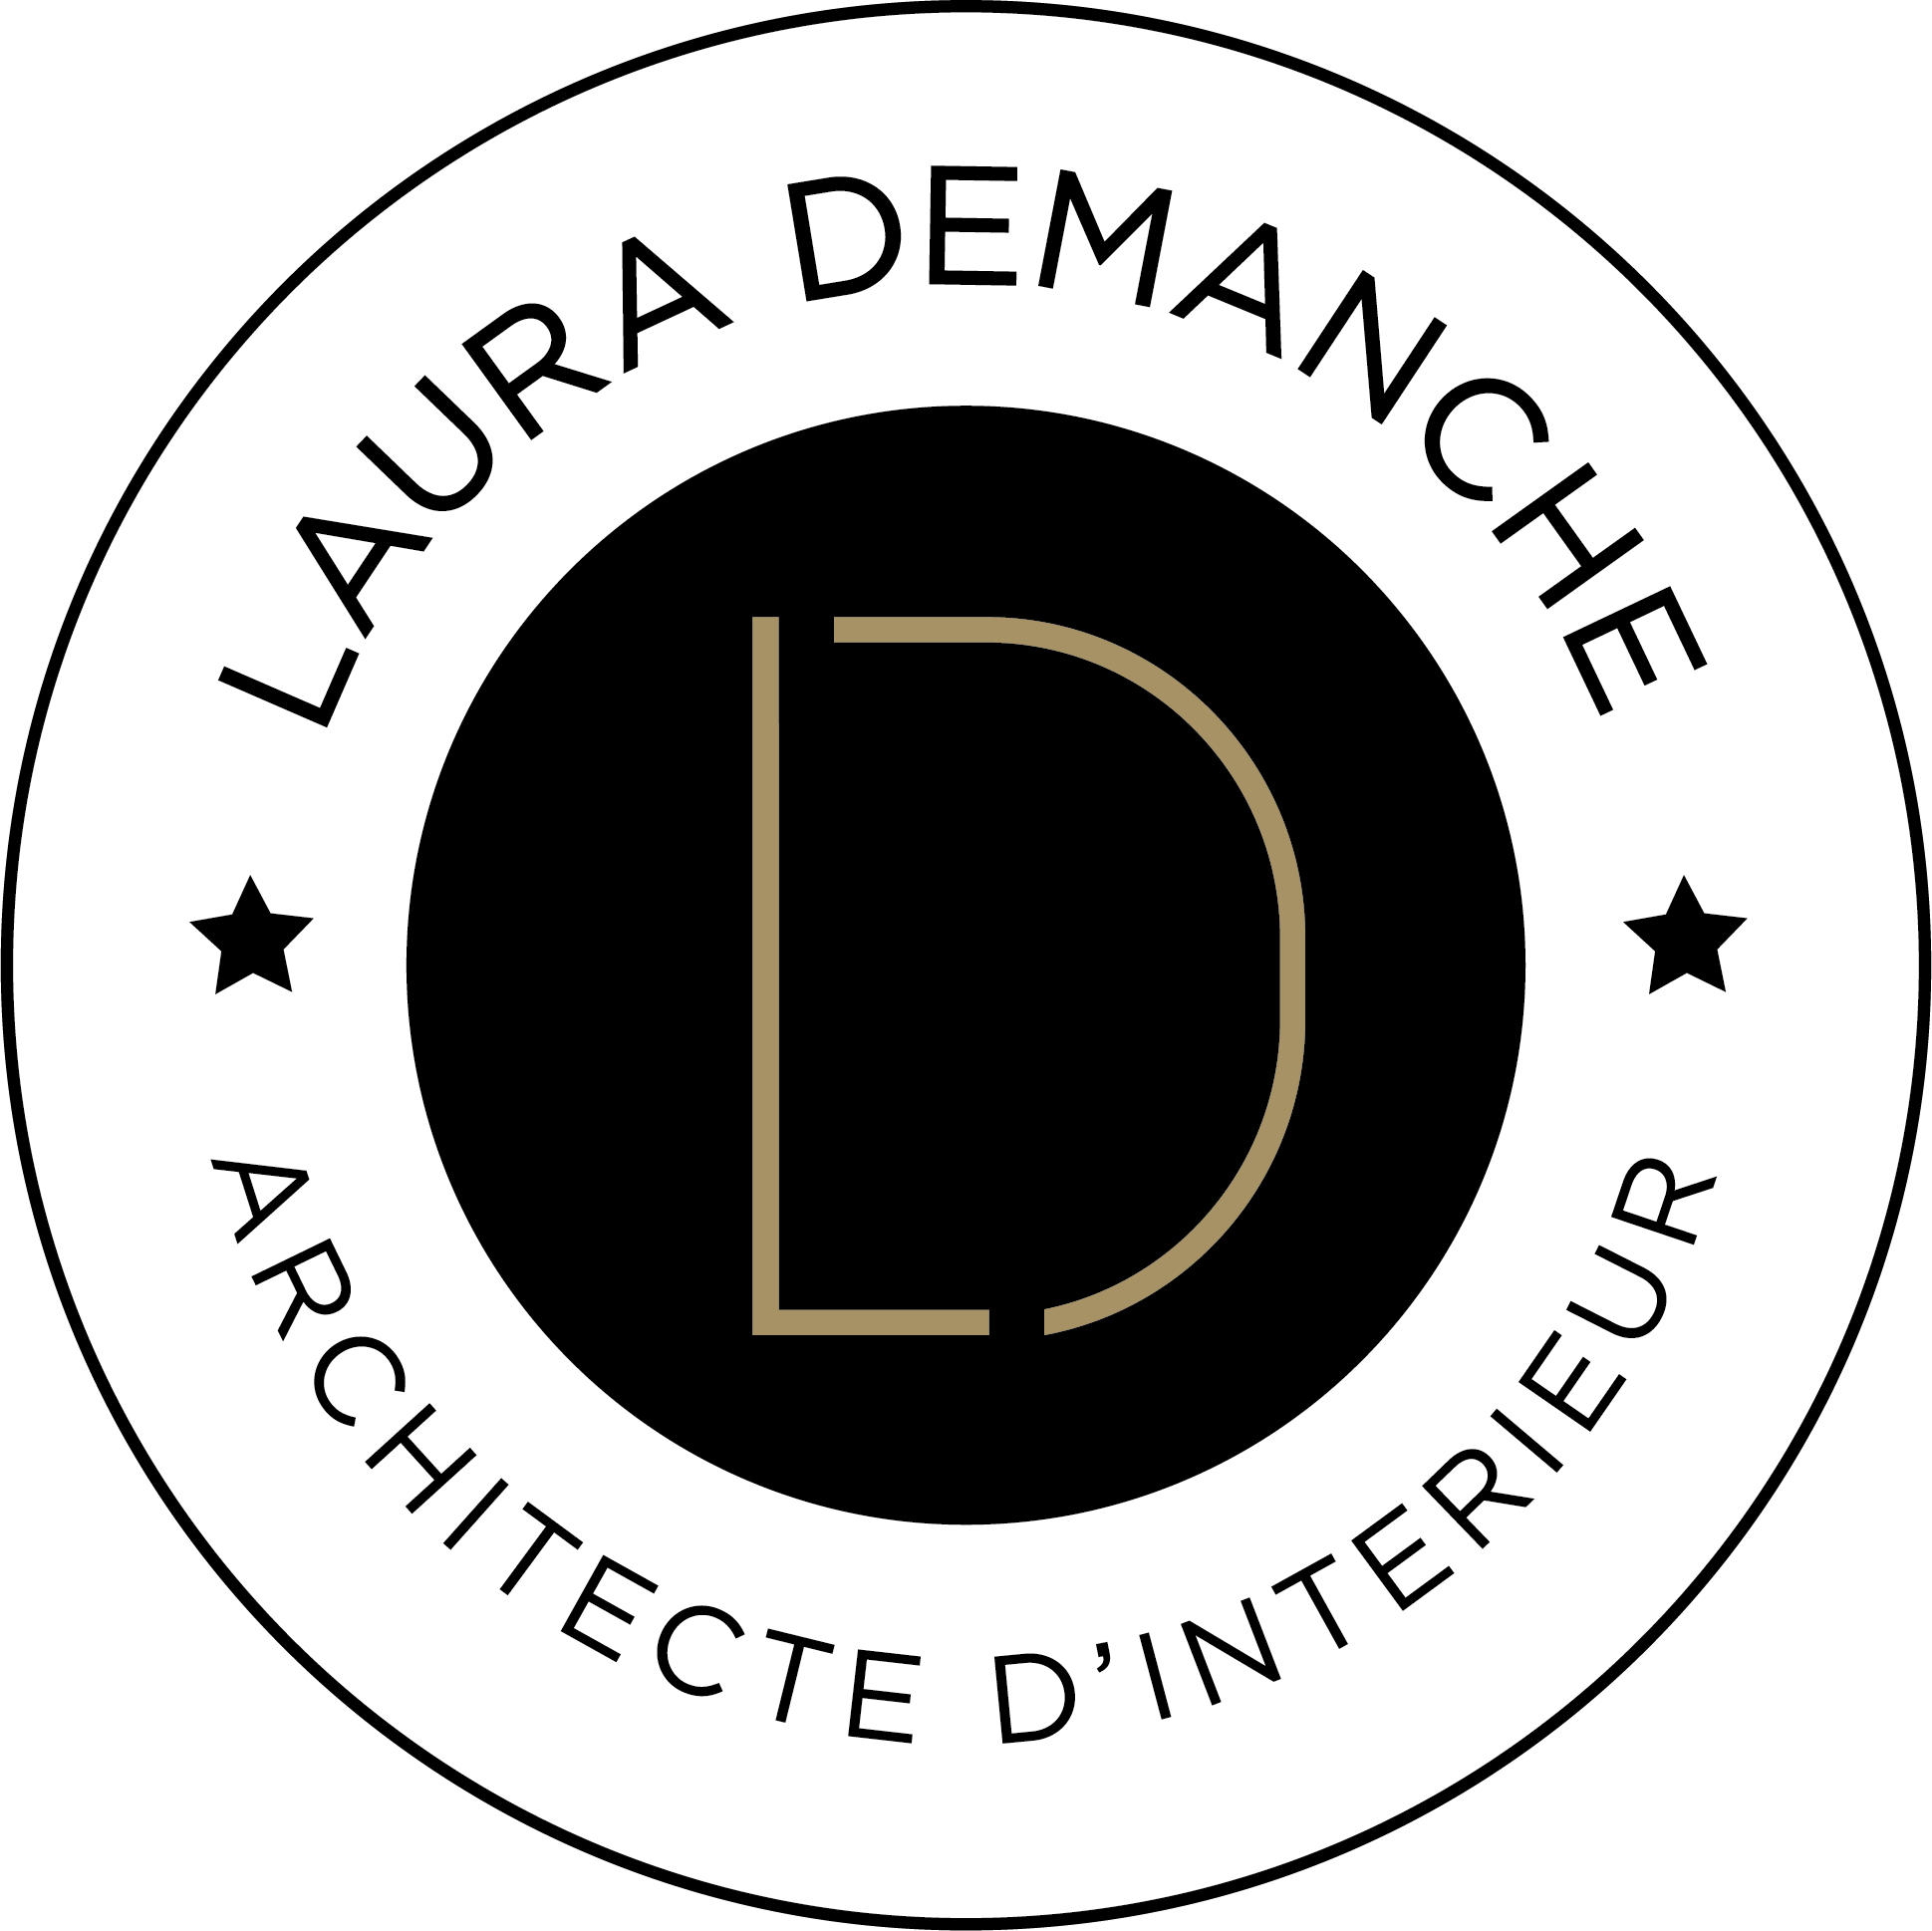 Laura Demanche